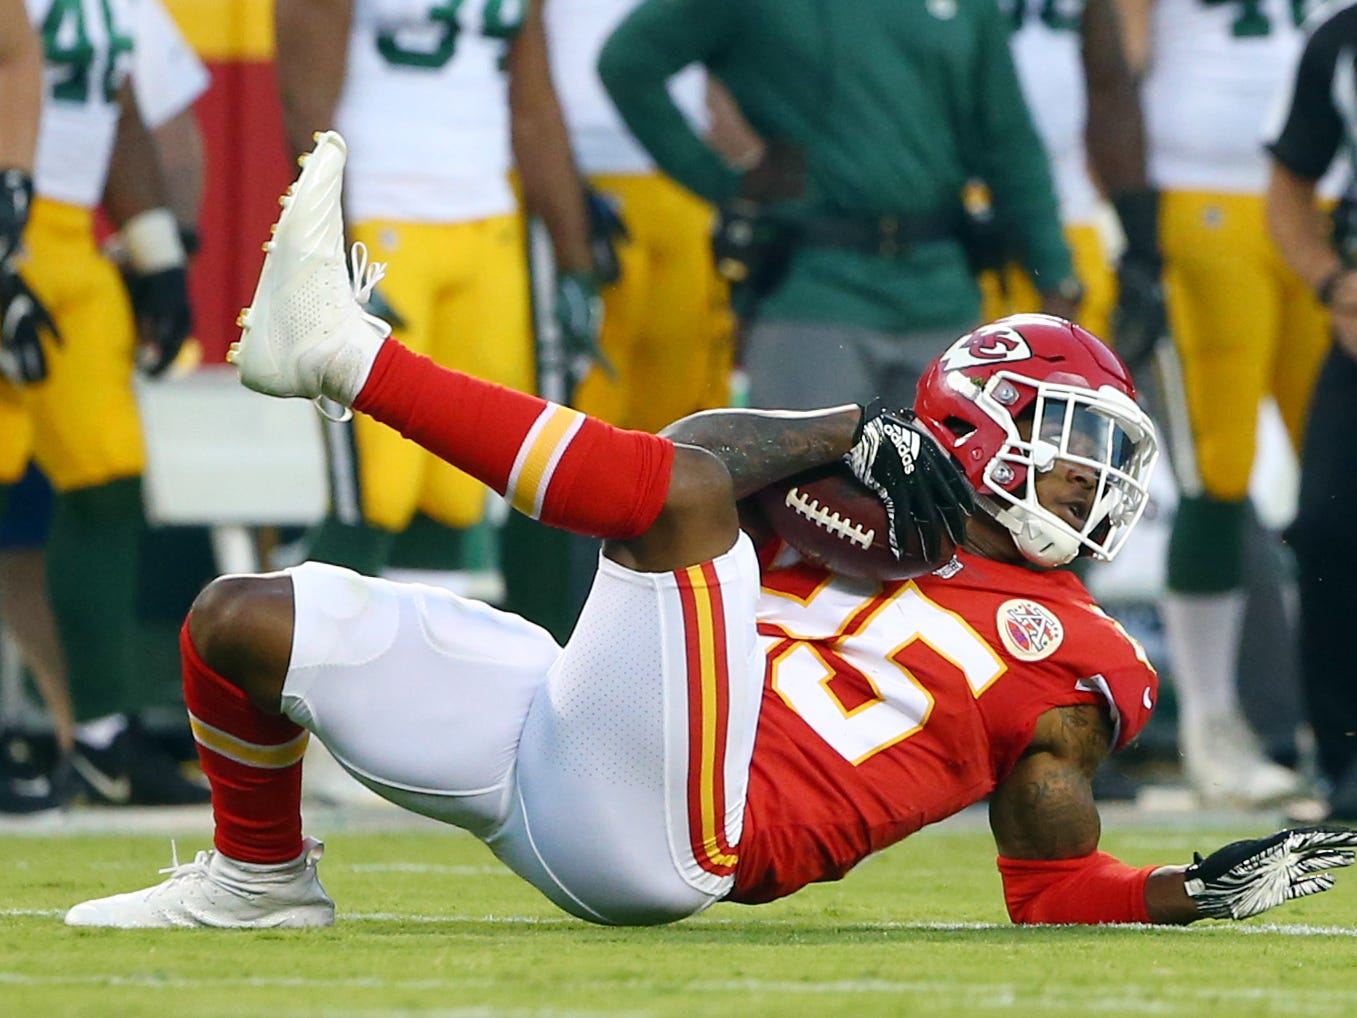 Aug 30, 2018; Kansas City, MO, USA; Kansas City Chiefs defensive back Armani Watts (25) intercepts a pass against the Green Bay Packers in the first half at Arrowhead Stadium.